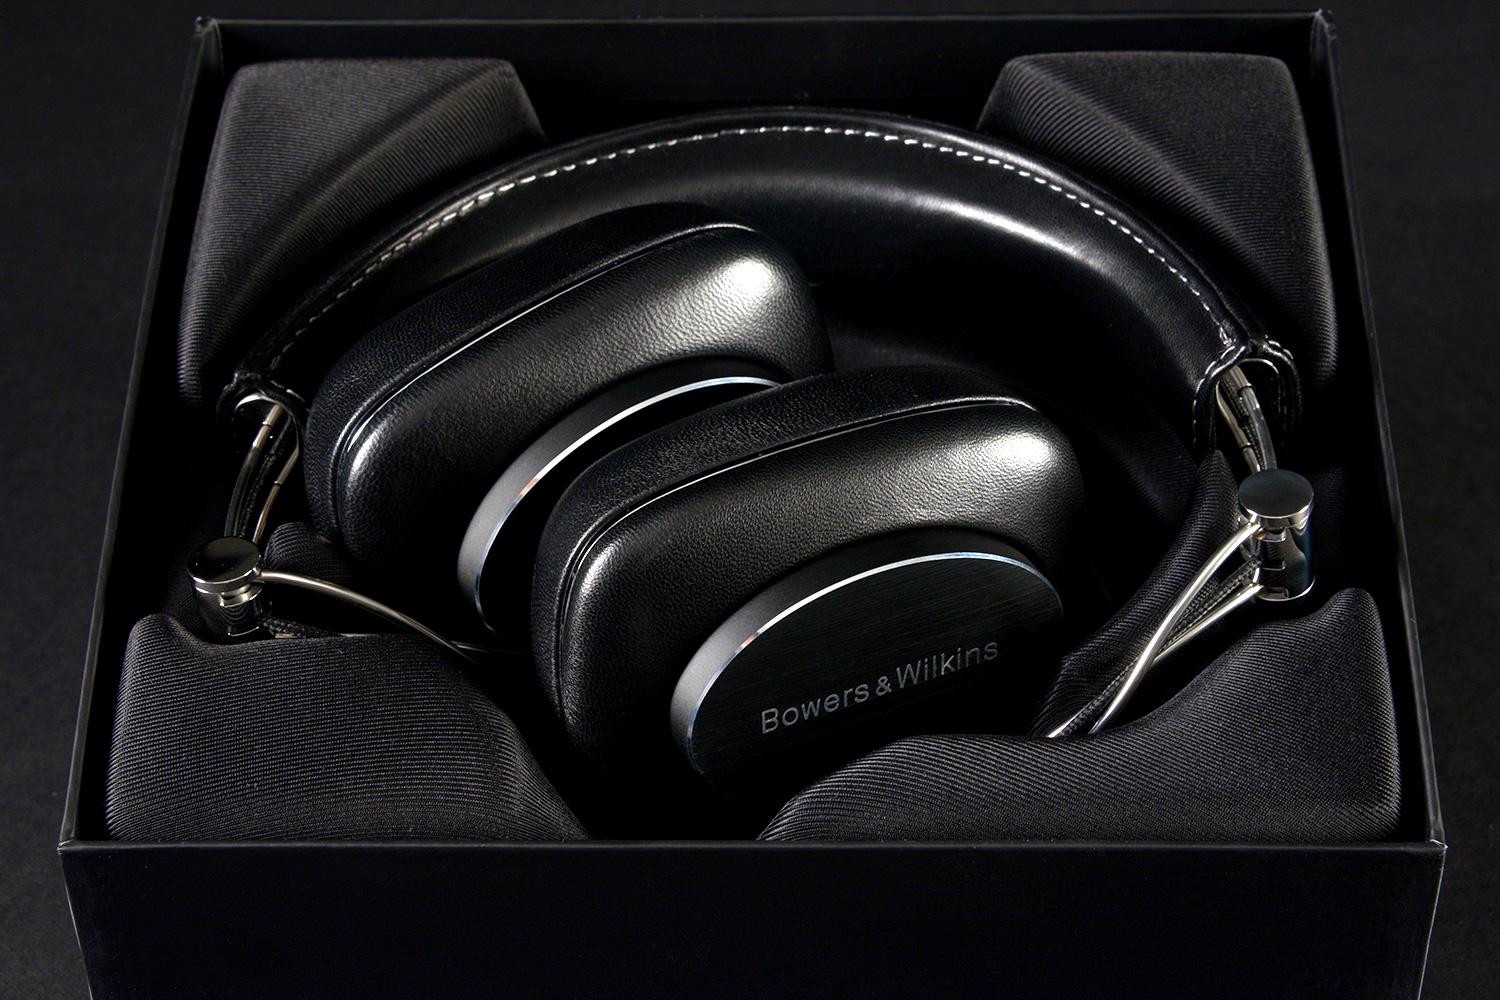 bowers-wilkins-p7-hi-fi-headphones